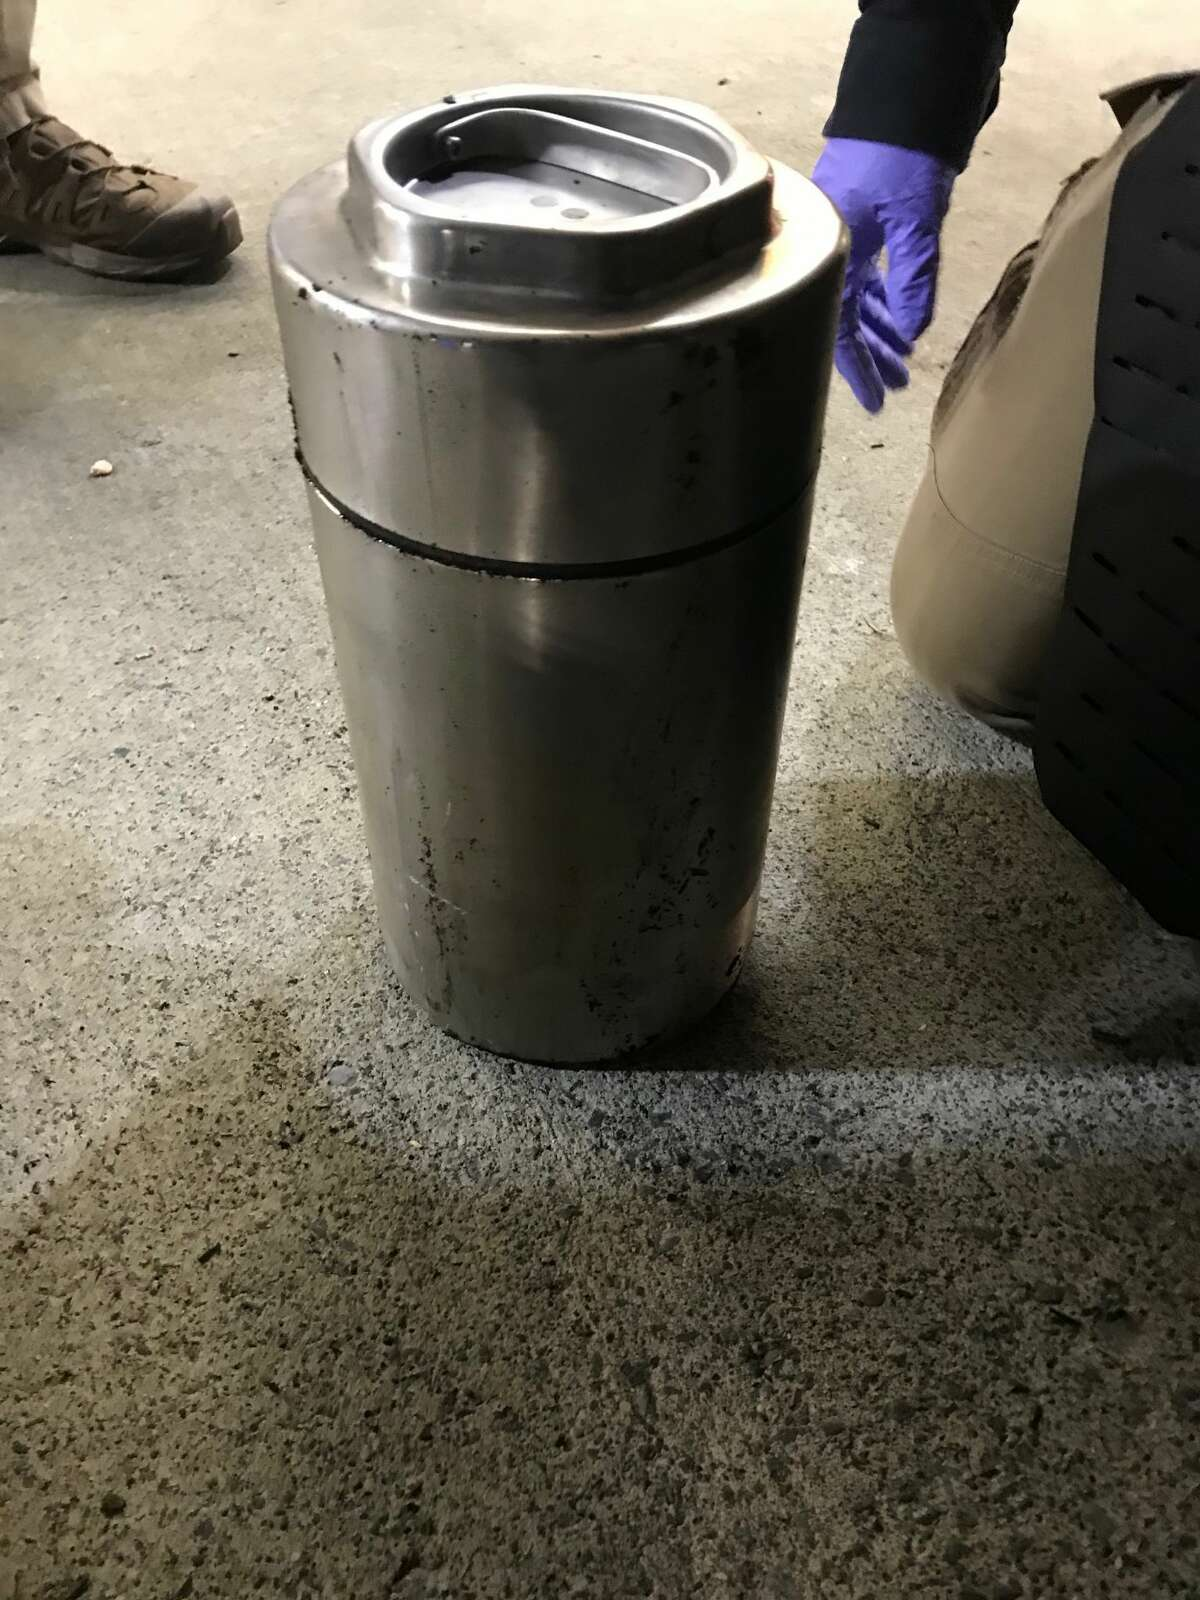 A police investigation determined this container contained soup not a bomb after it was found near the University at Albany's downtown location. The discovery triggered a response from a hazardous-material's team.